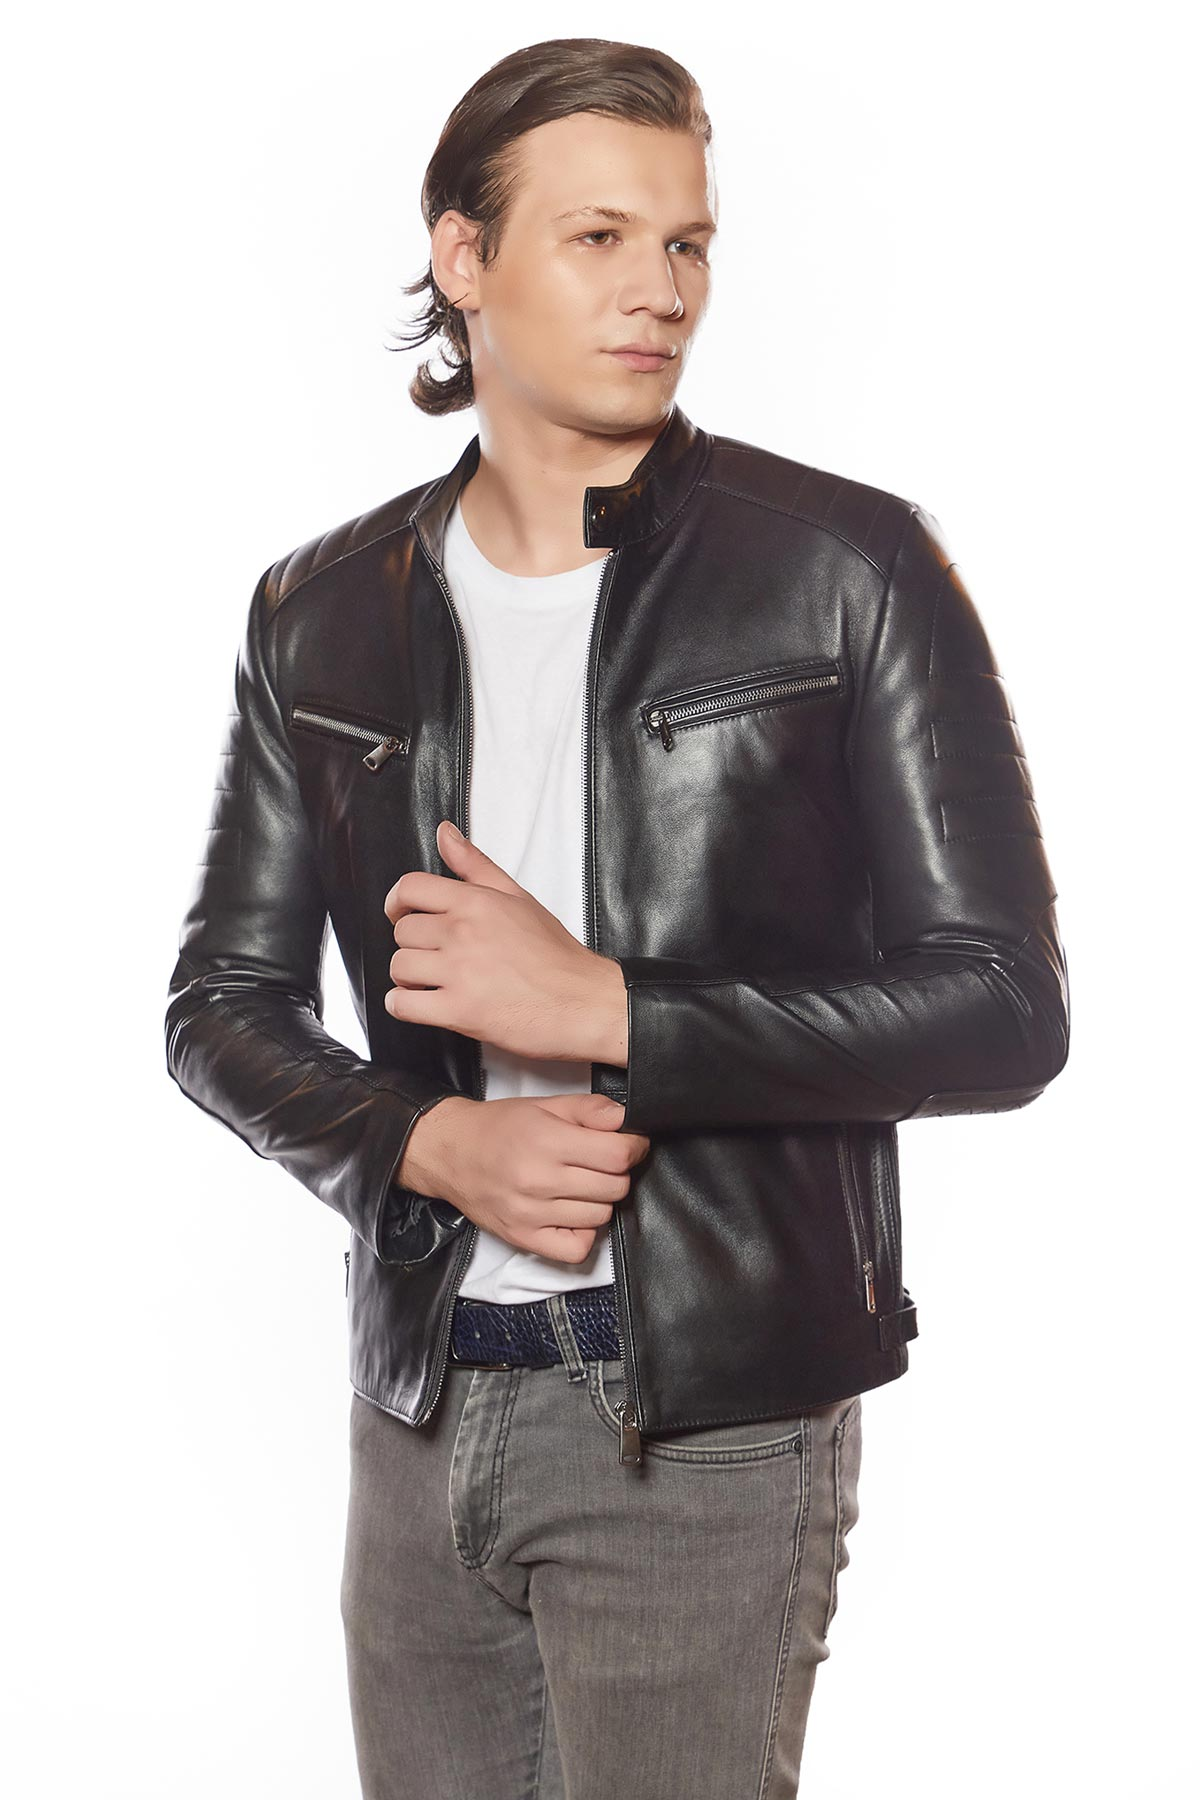 rough leather jackets